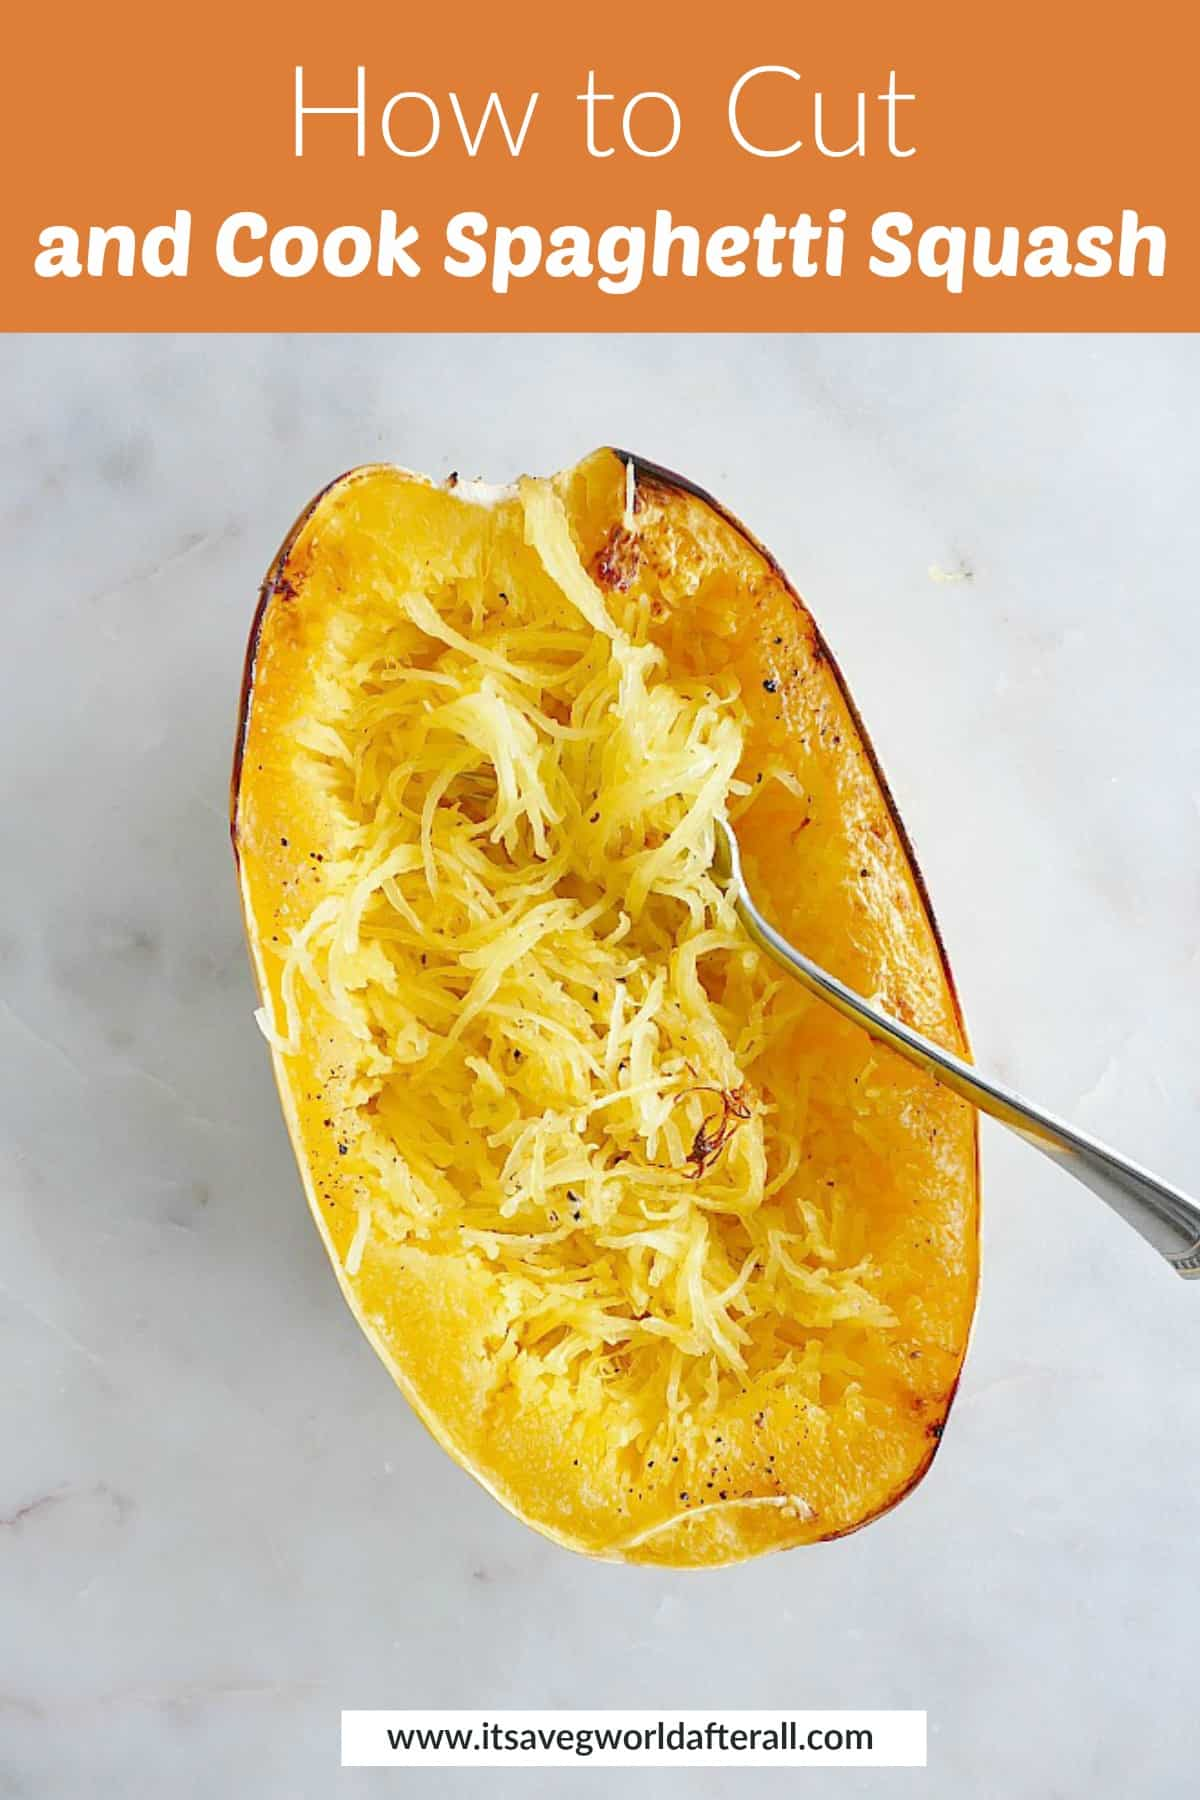 image of spaghetti squash with a fork in it under a text box with post title